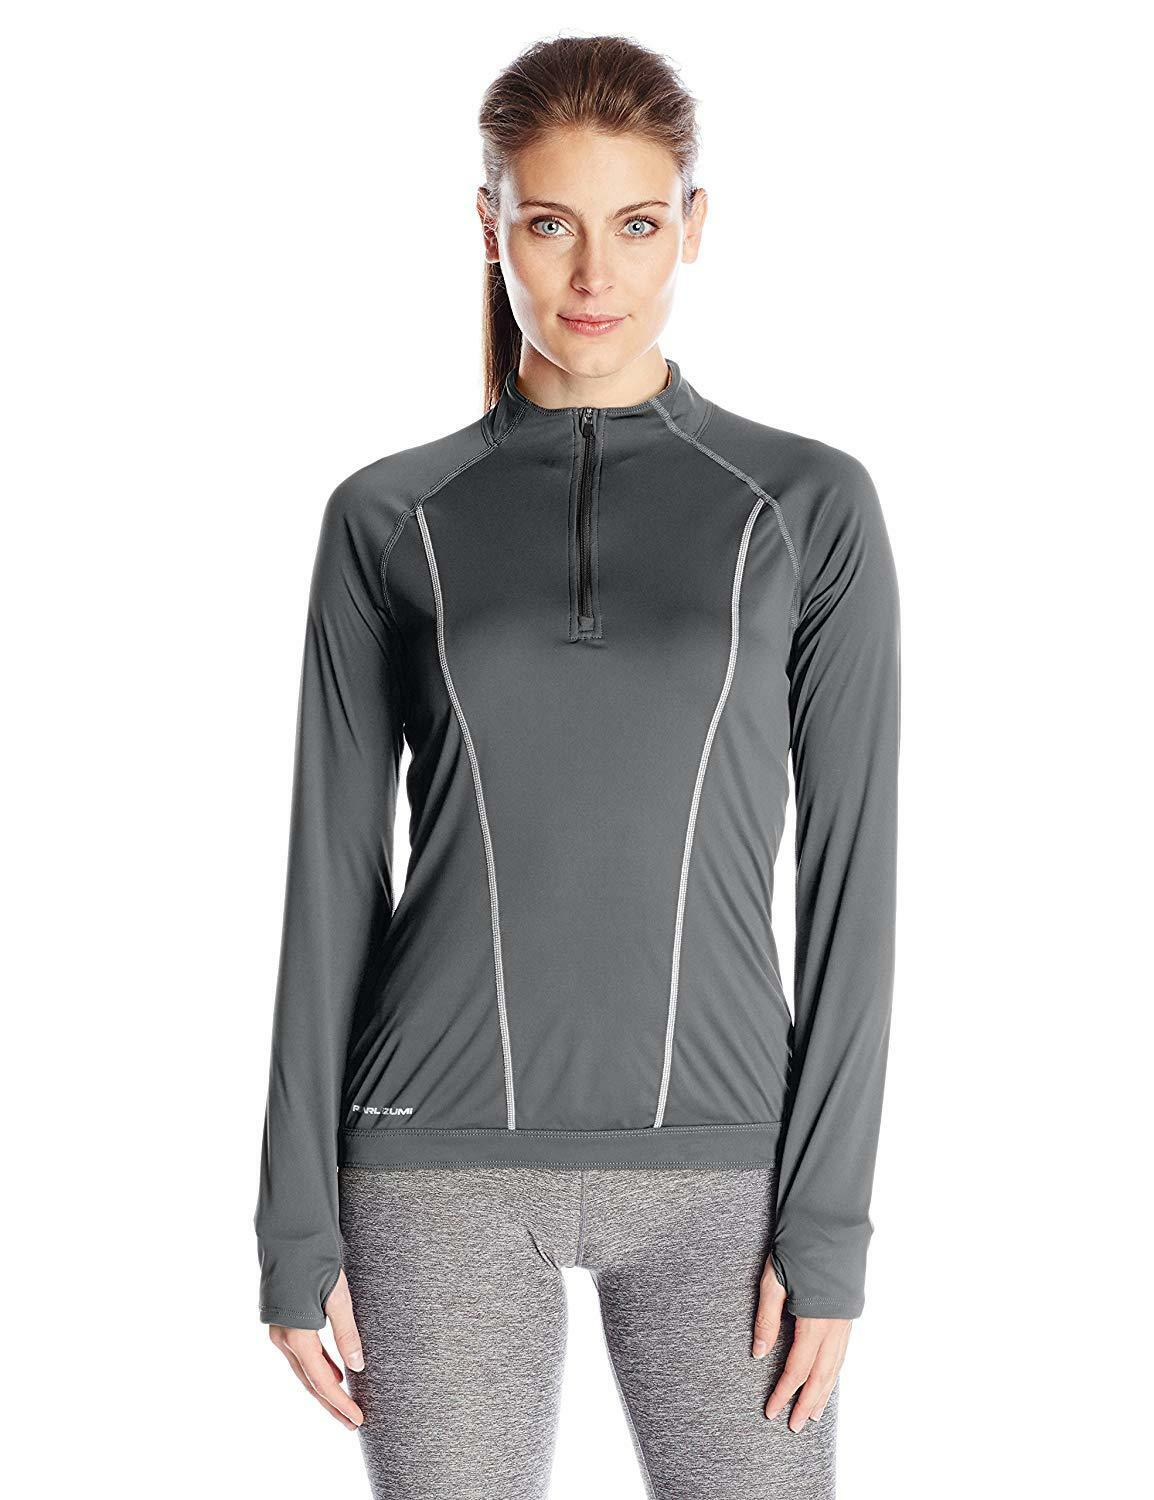 Pearl iZUMi  Women's Pursuit Long Sleeve Top, Shadow Grey Clementine, Medium  cheapest